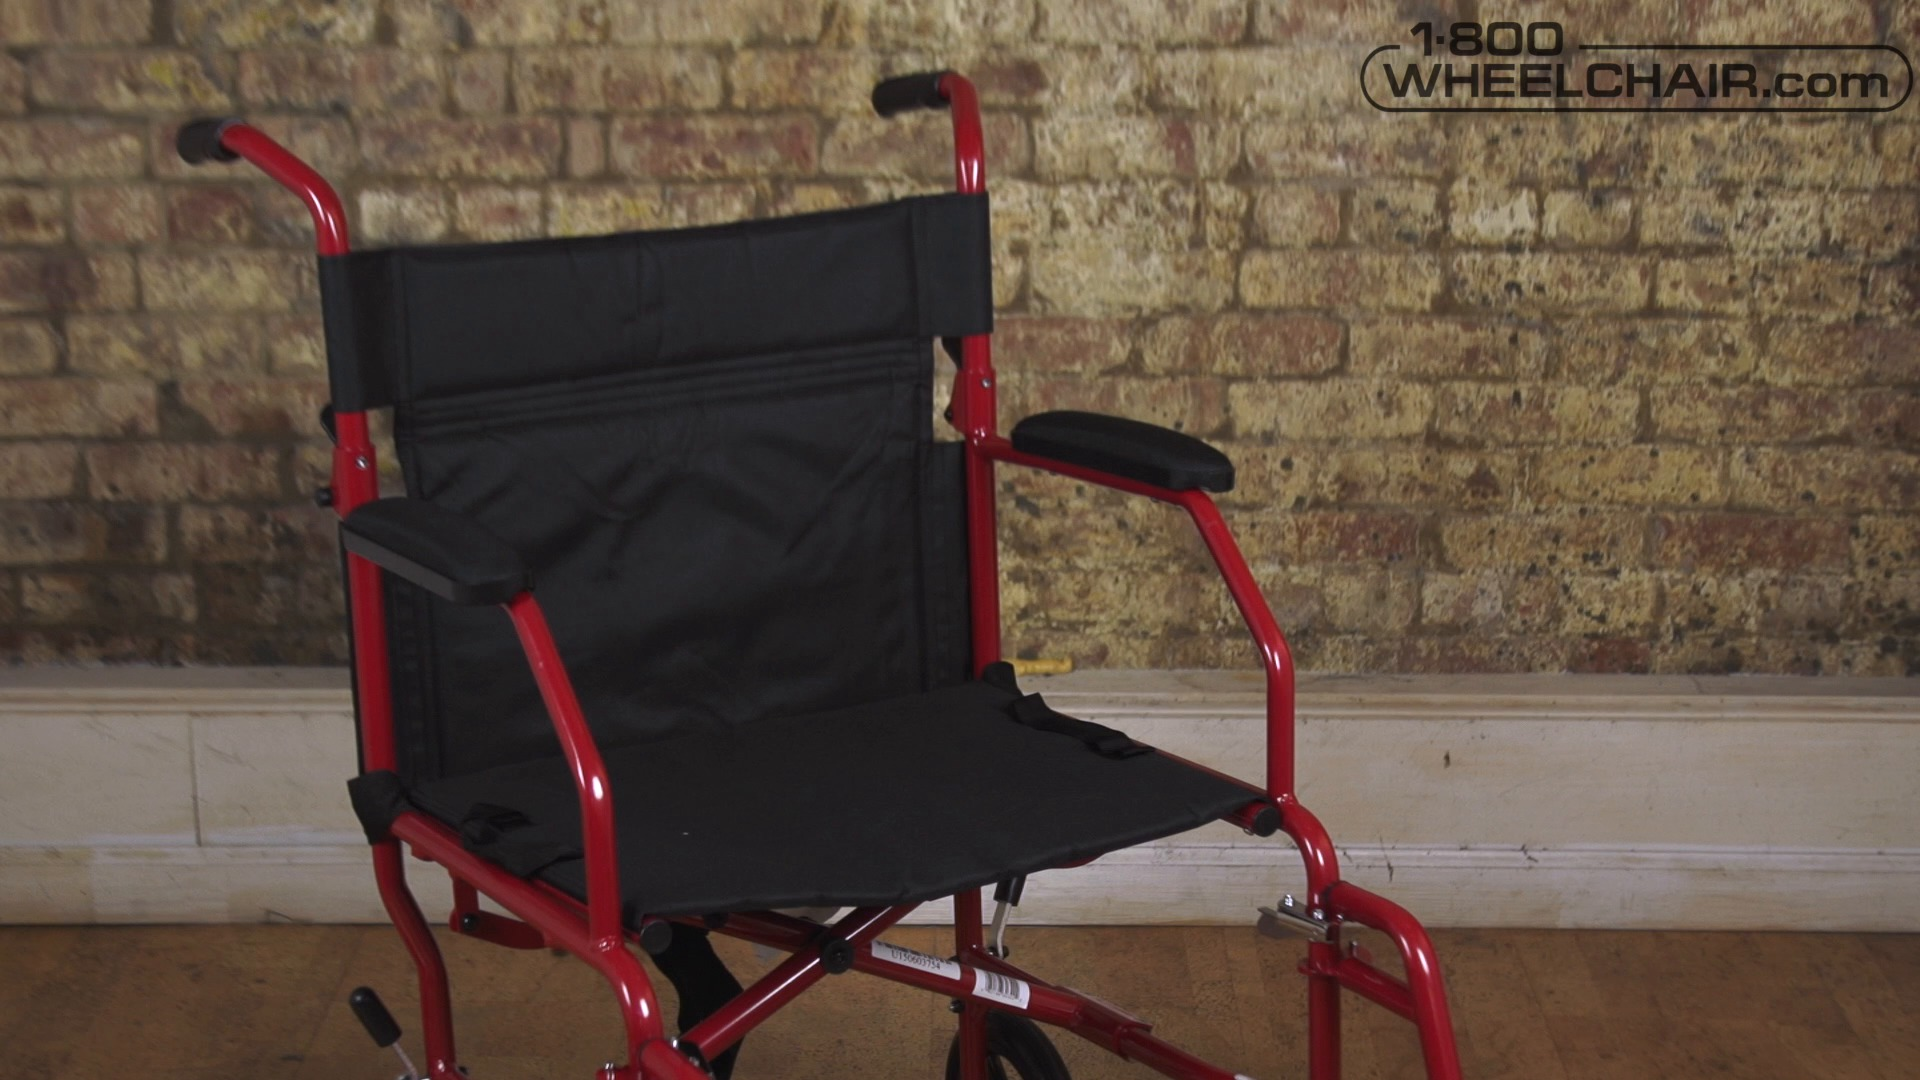 & Transport Wheelchairs | Transport Chairs | Companion Chairs